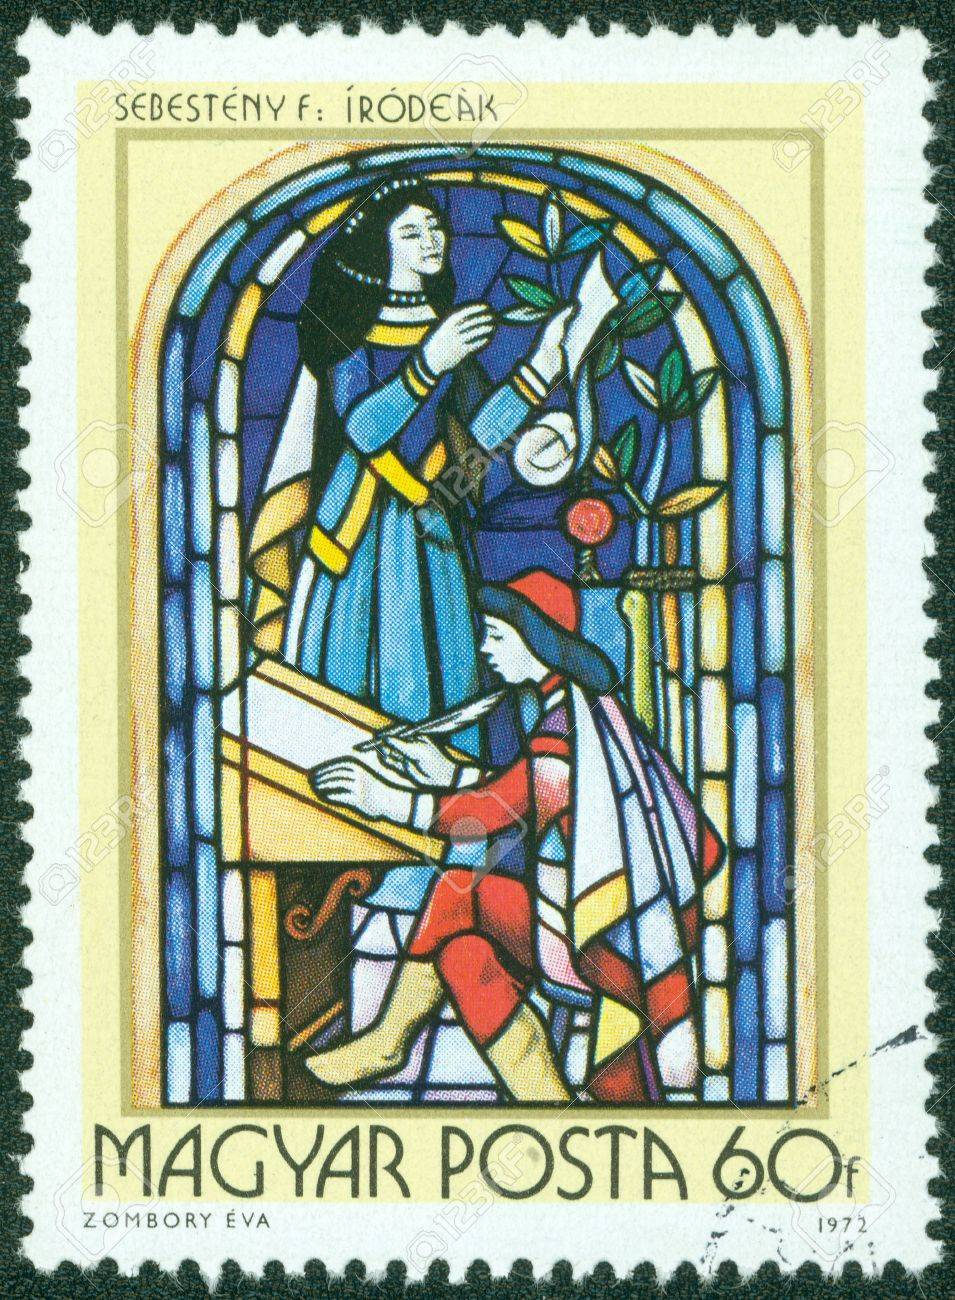 HUNGARY - CIRCA 1972  A stamp printed in Hungary, shows Stained-glass Window, 16th century scribe, by Ferenc Sebesteny, circa 1972 Stock Photo - 14830361